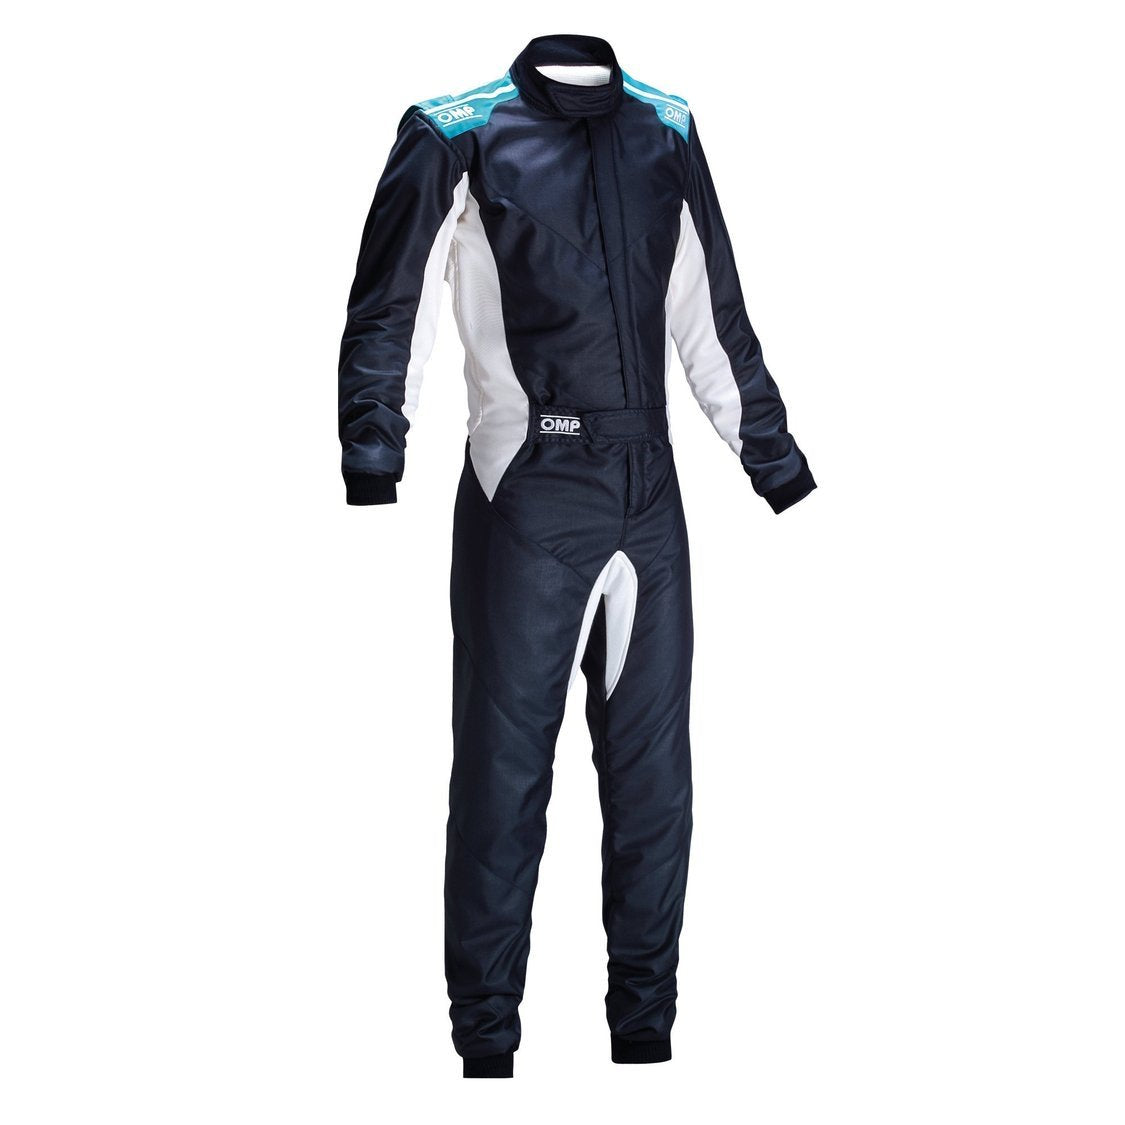 OMP One-S Suit - Saferacer